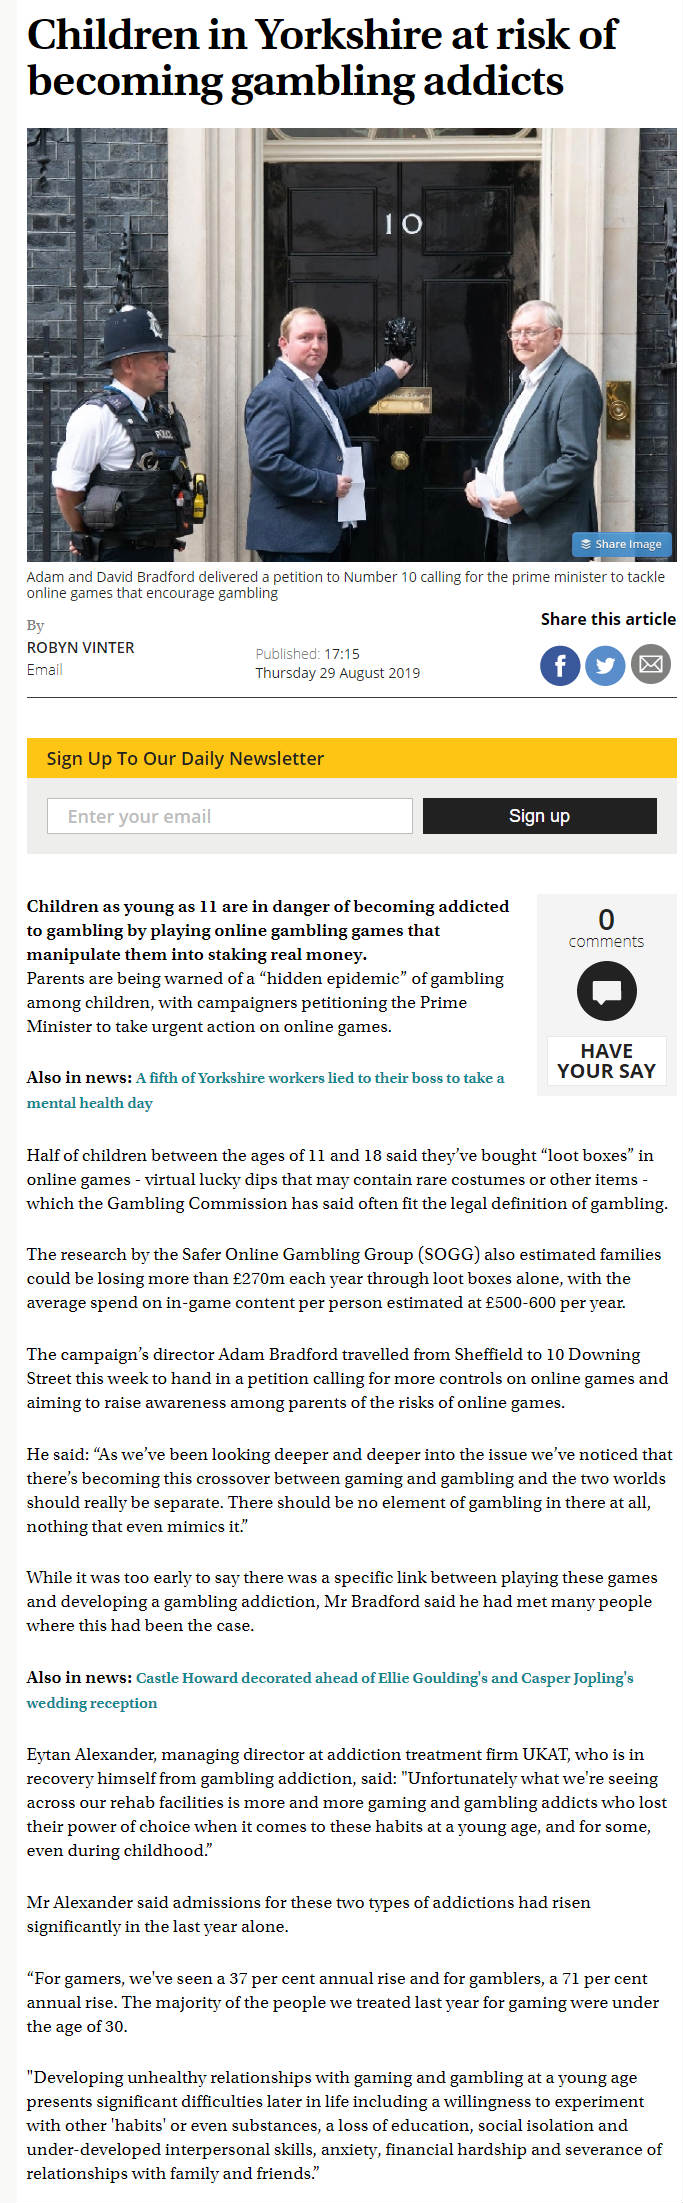 The Yorkshire Post: UKAT Founder Concerned over Gaming and Gambling Addiction Admission Rise